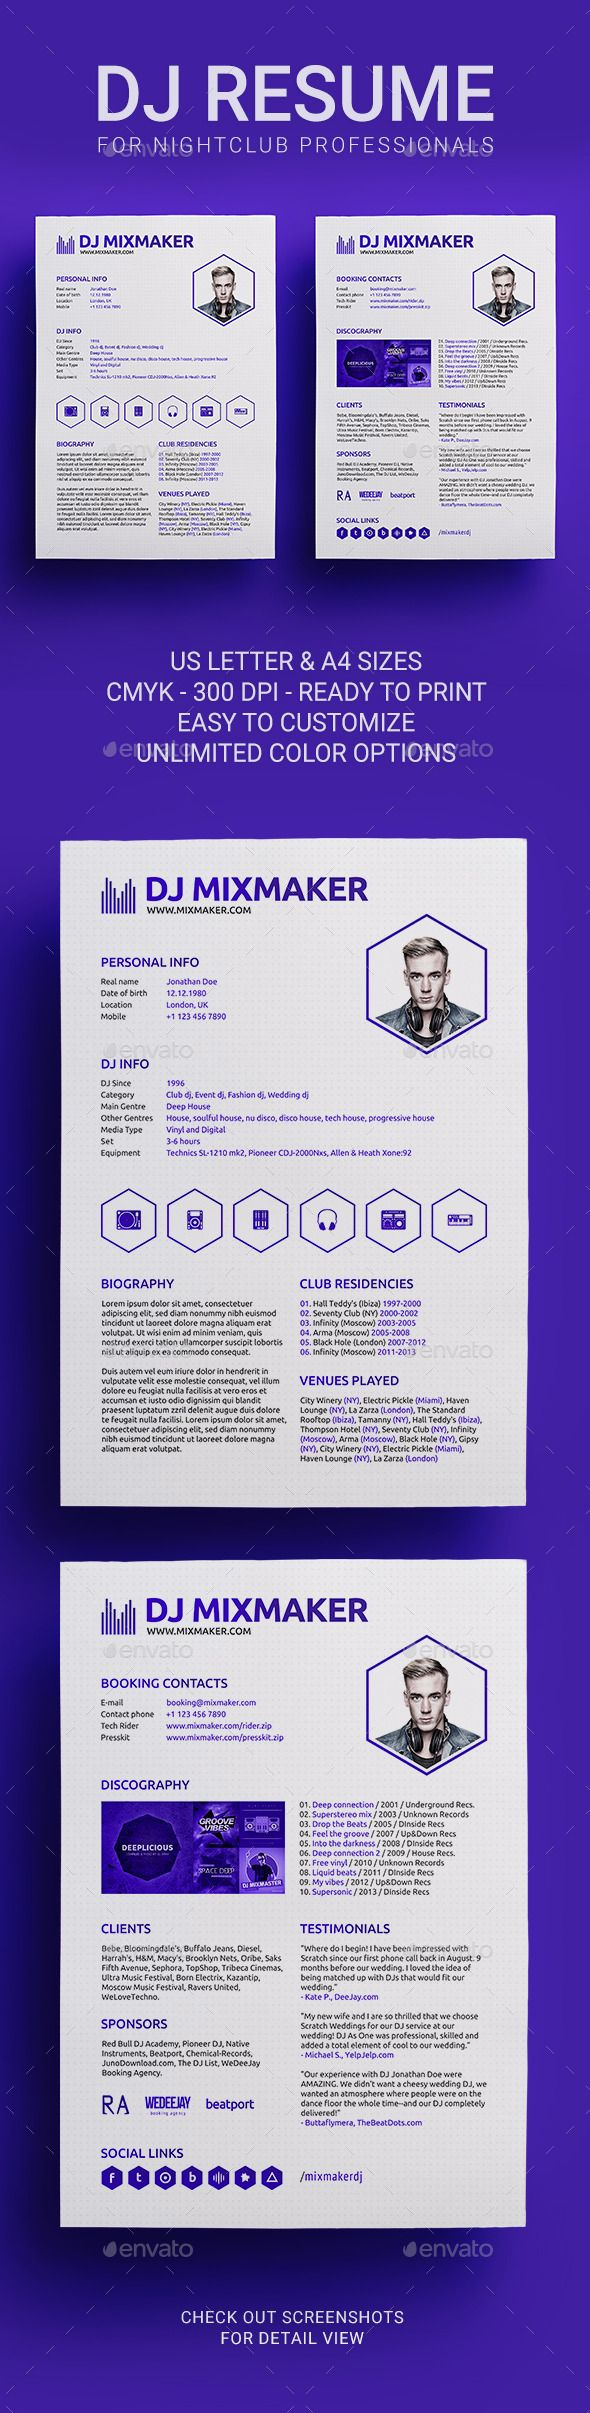 1000 images about dj press kit and dj resume templates on for Dj biography template